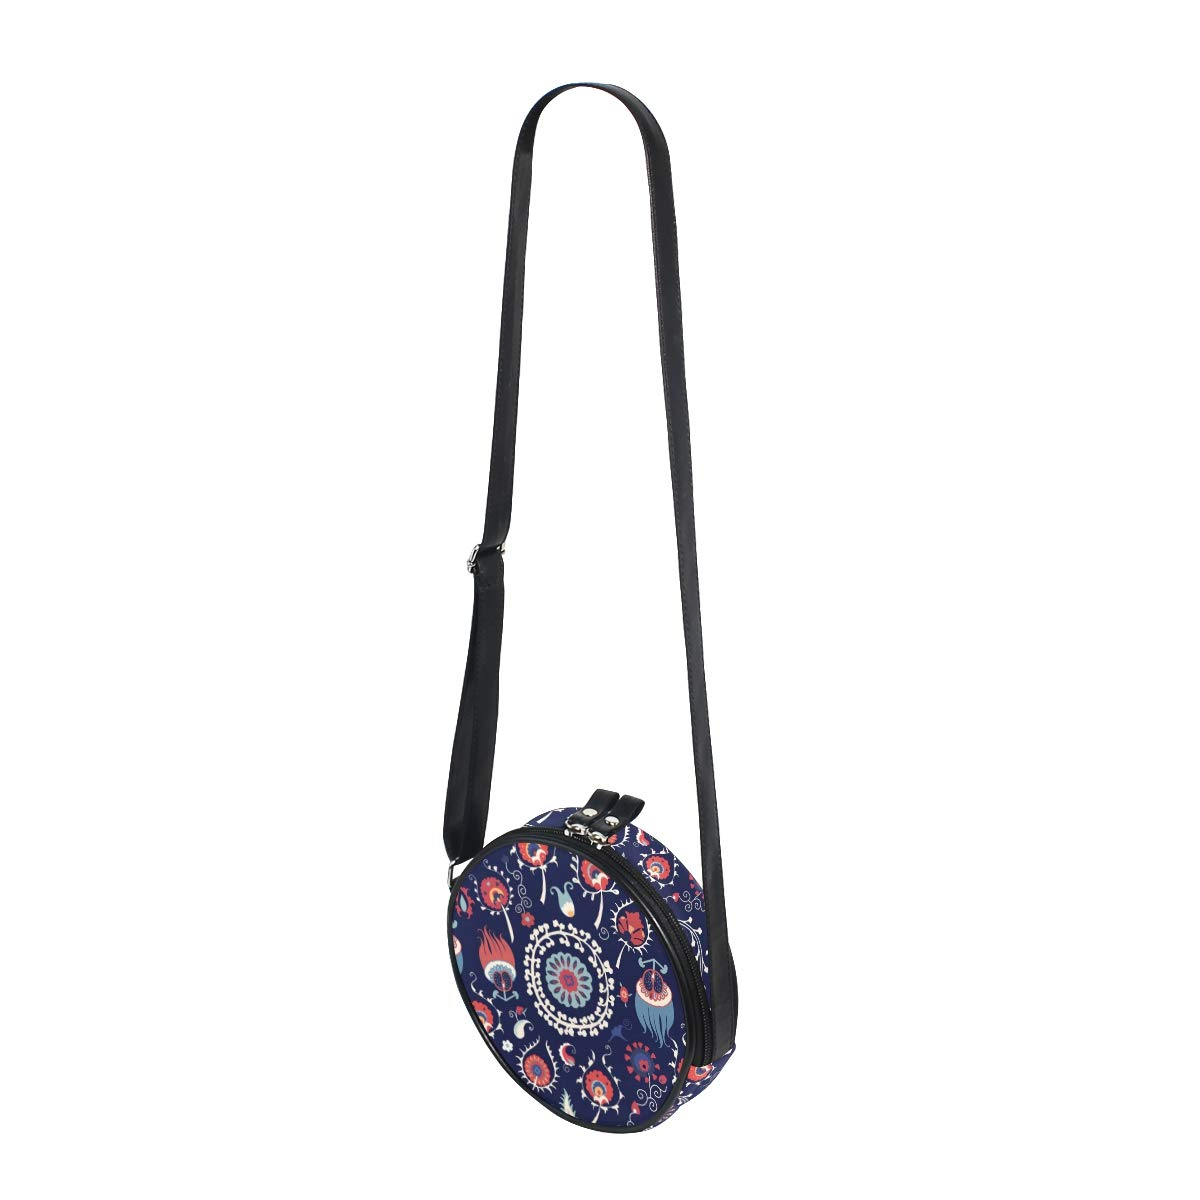 Vector Ethnic Style Floral Seamless Pattern Super Cute Design Small Canvas Messenger Bags Shoulder Bag Round Crossbody Bags Purses for Little Girls Gifts